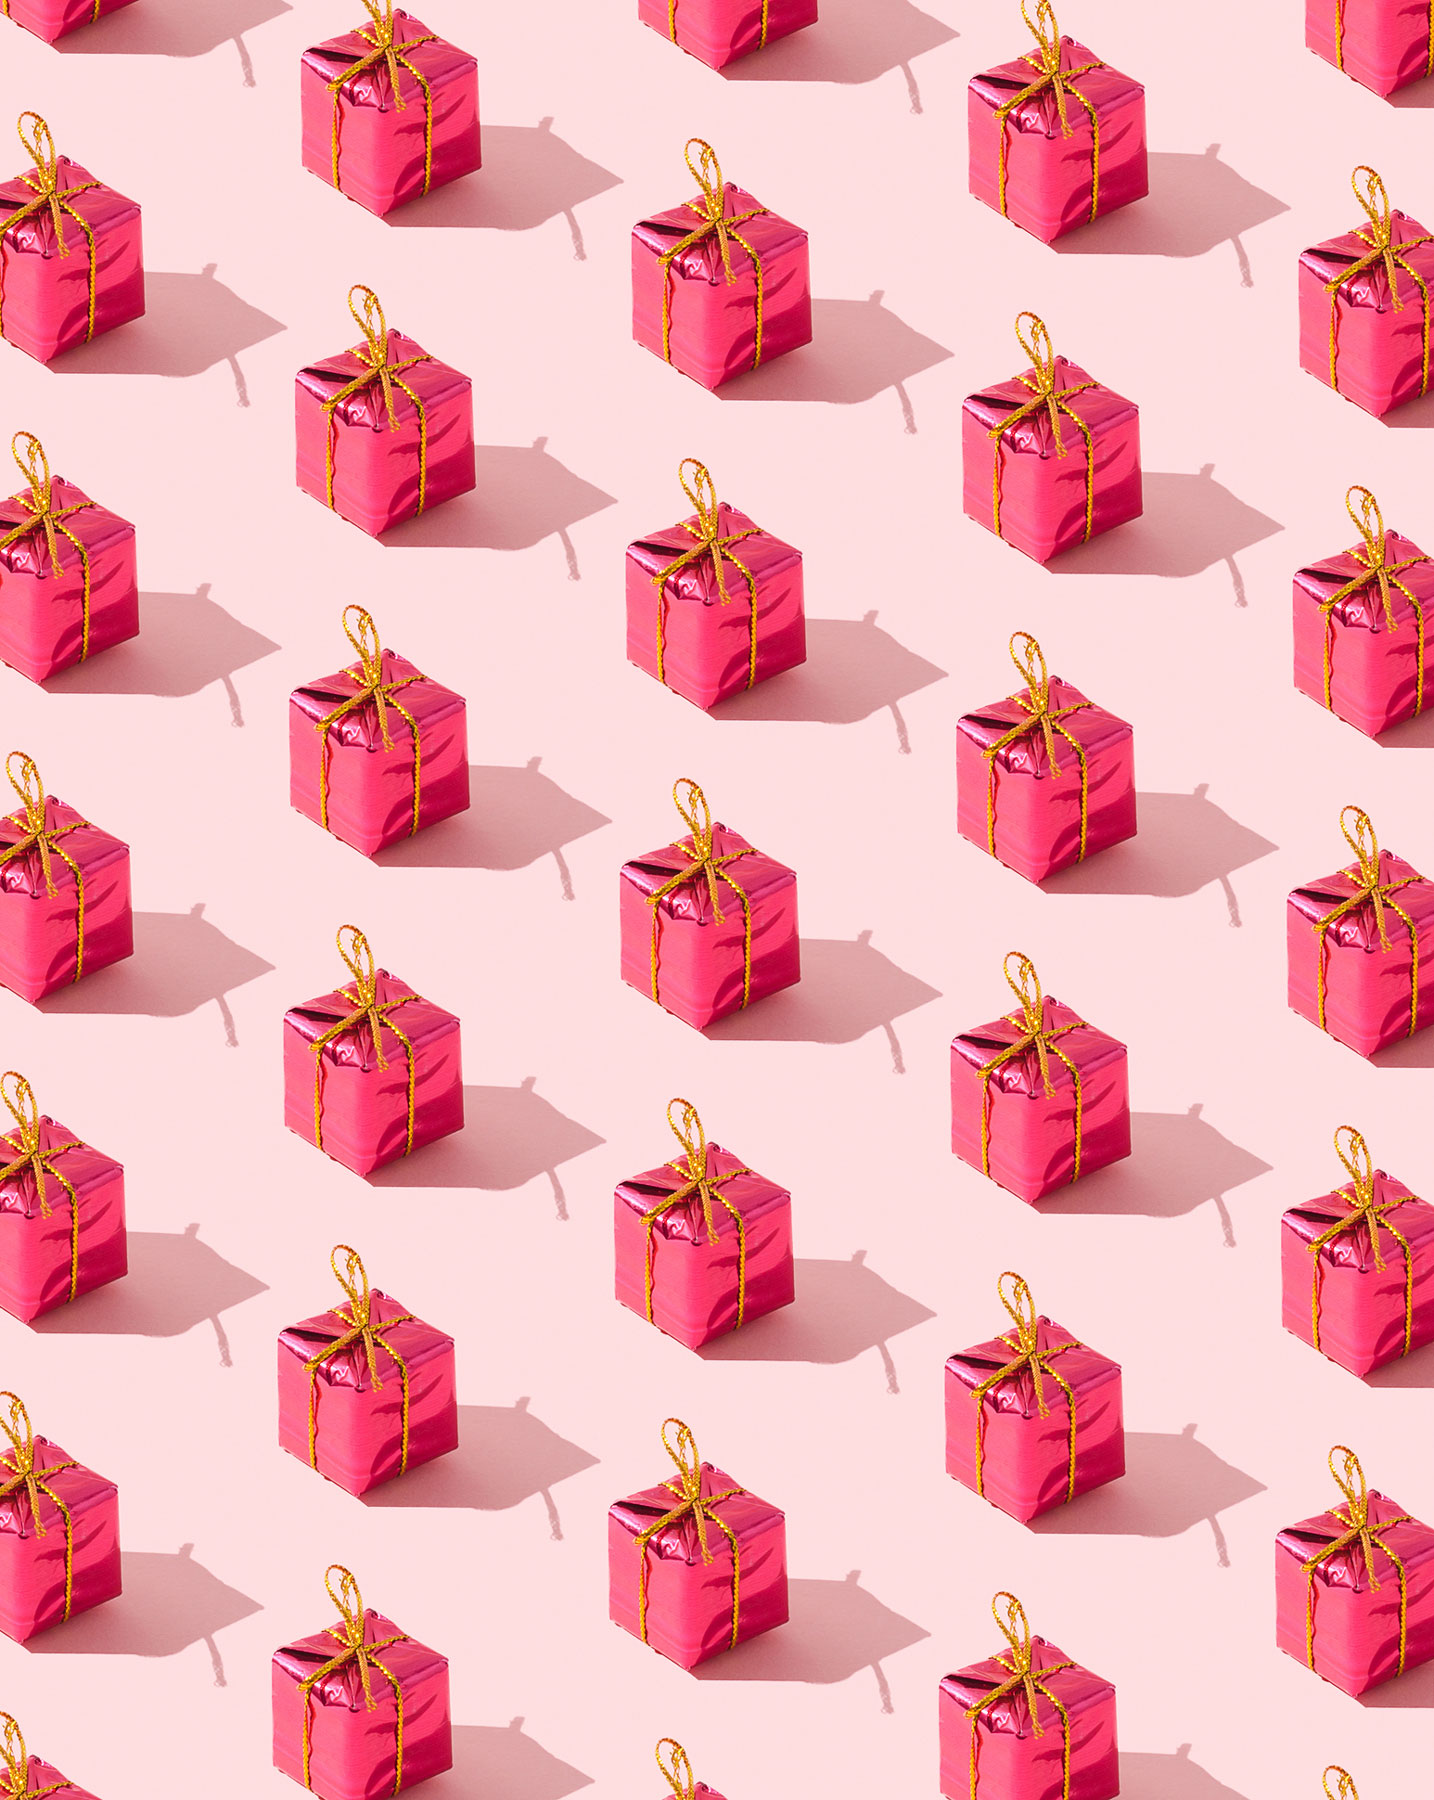 Pink gift wrapped boxes with gold ribbon - gift wrapping secrets